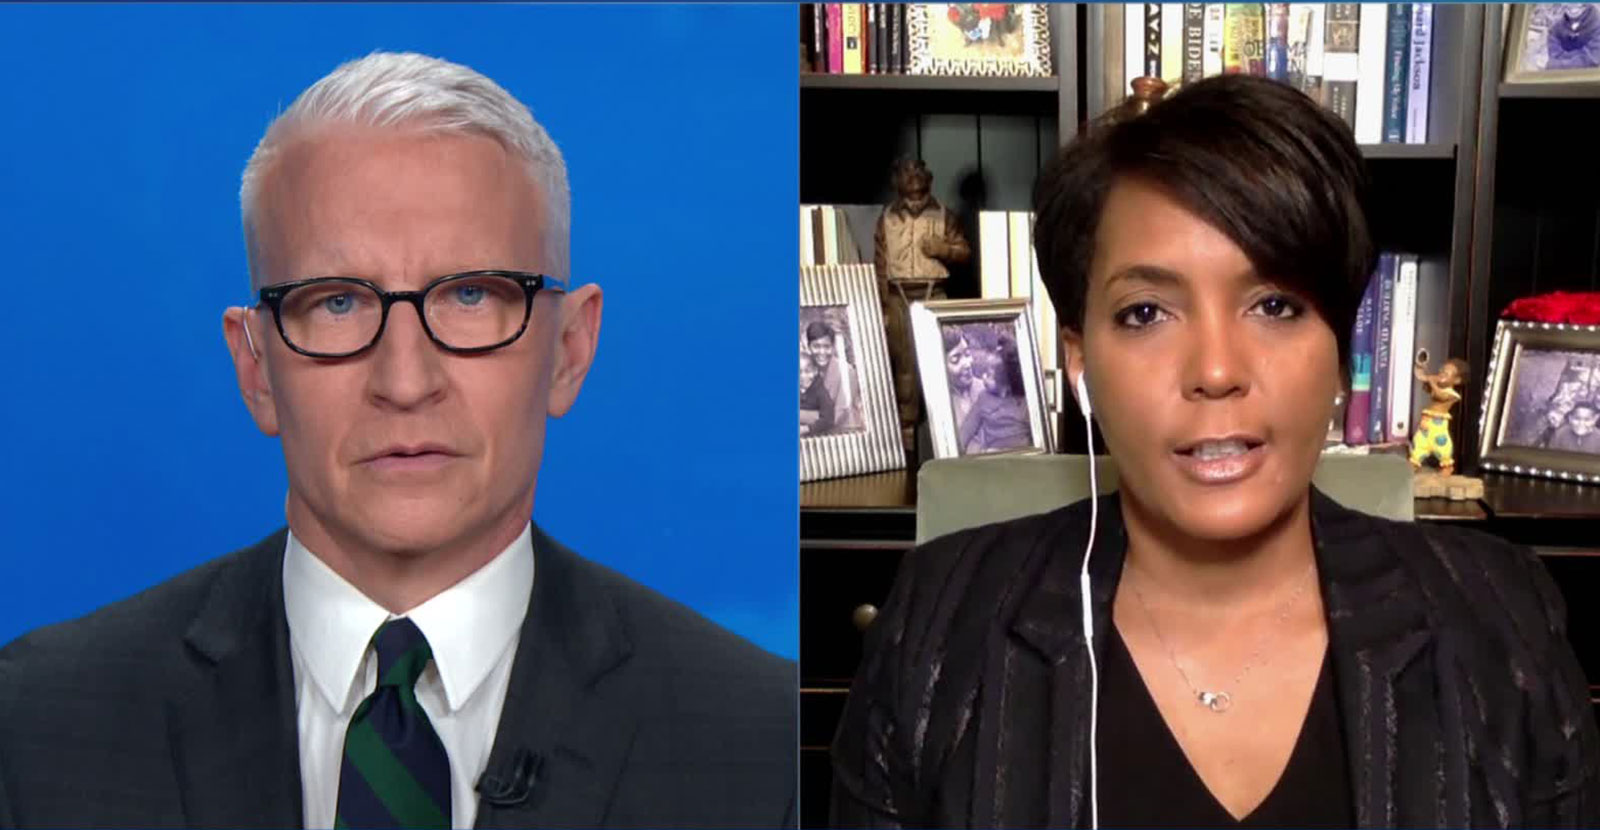 Atlanta Mayor Keisha Lance Bottoms speaks with CNN's Anderson Cooper on Friday night.